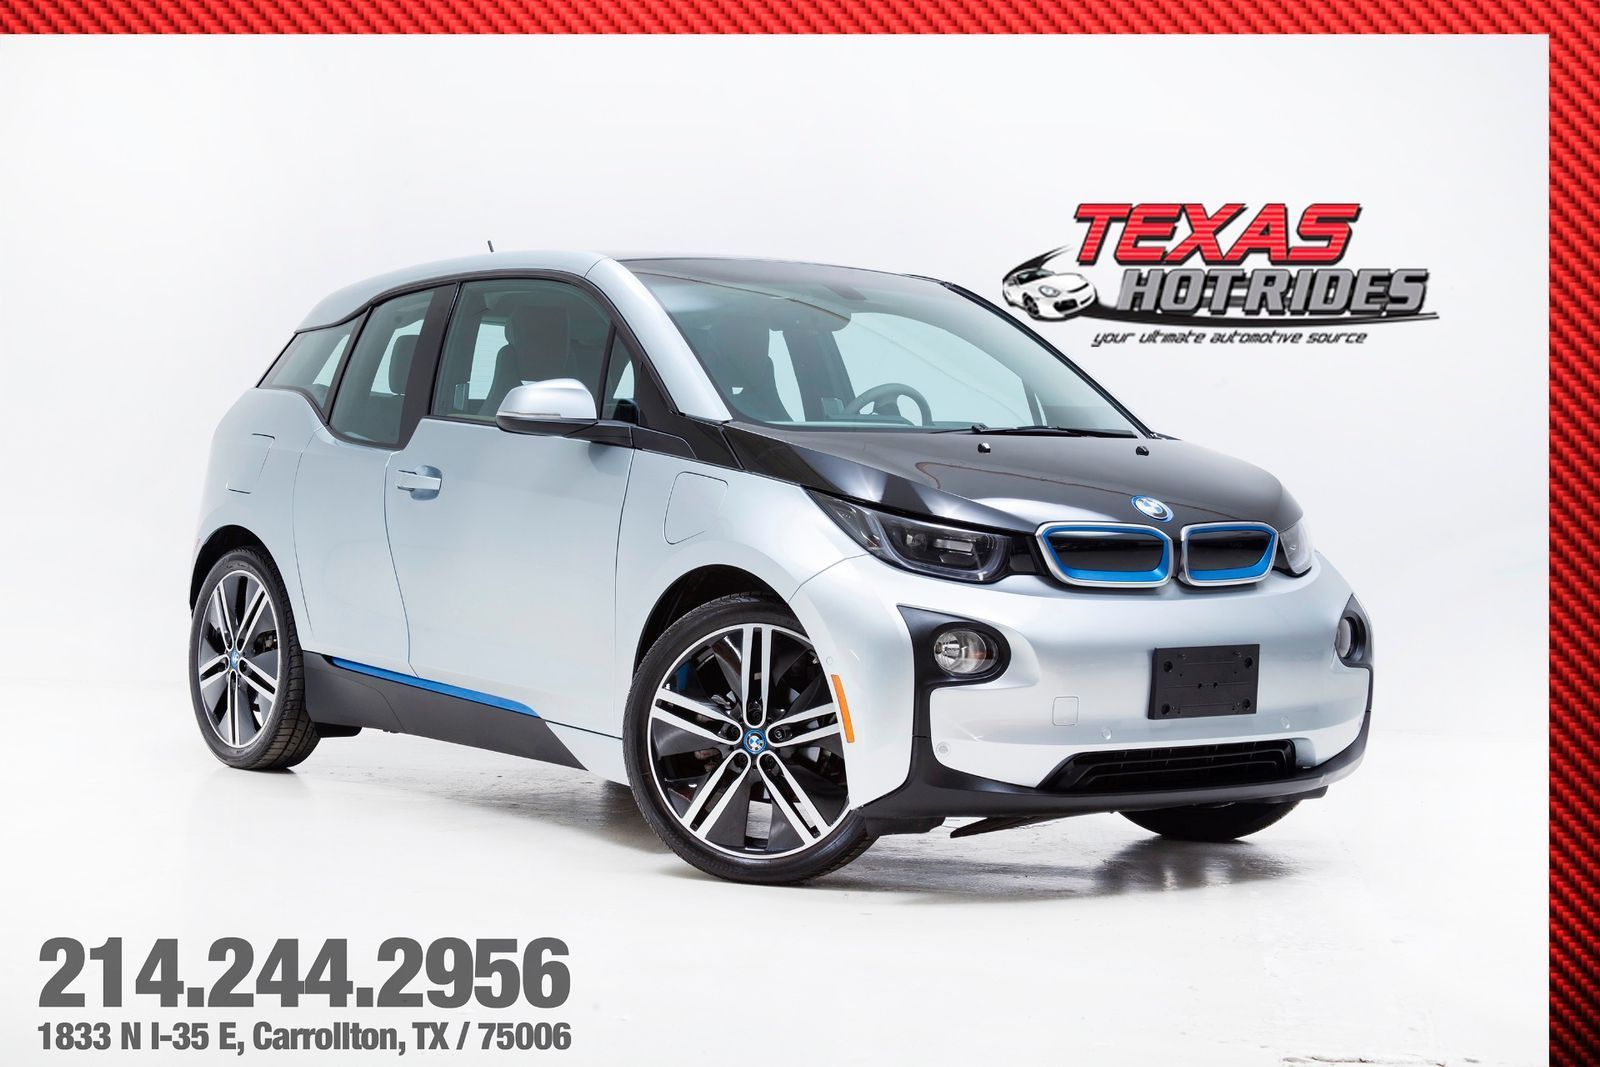 supply america vehicles newly the electric bid angeles fleet wins fully los detail global bmw us article with department veh car unveiled north s to police of transportation